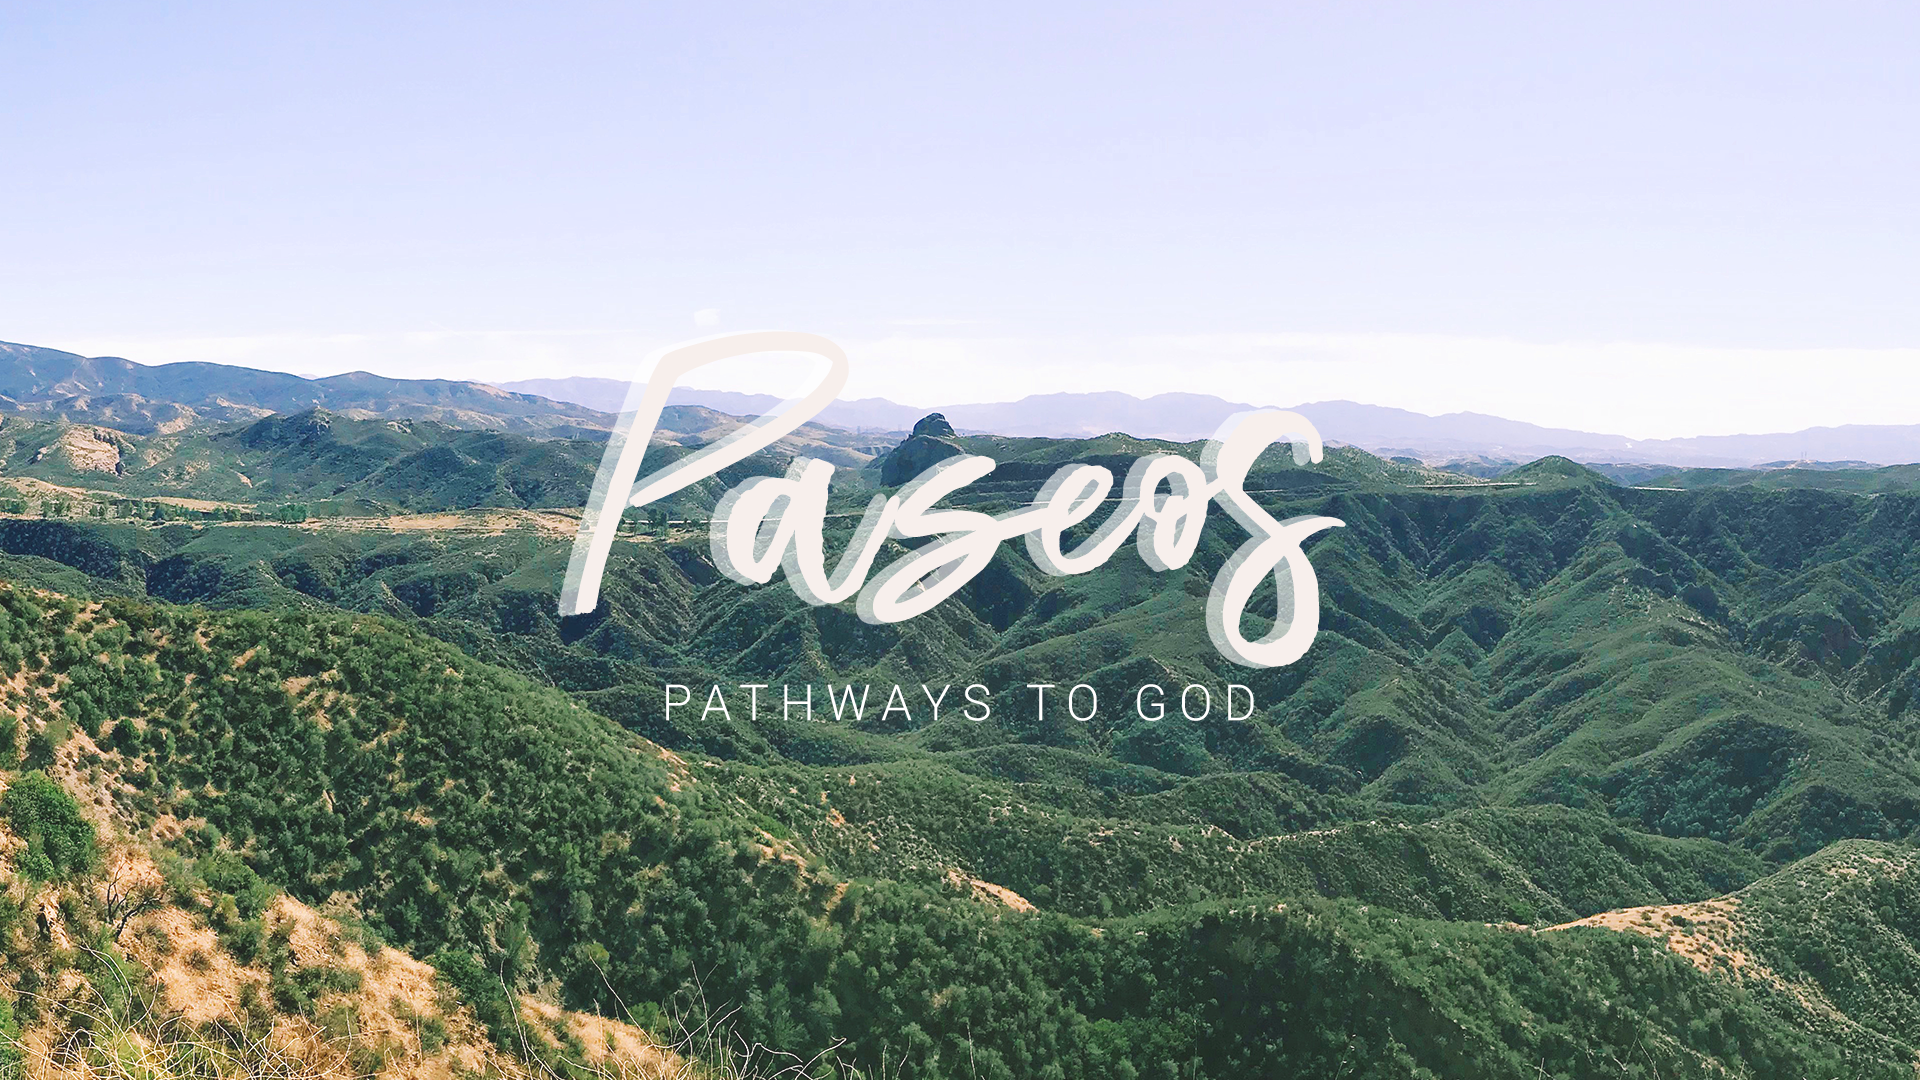 paseos title3.png